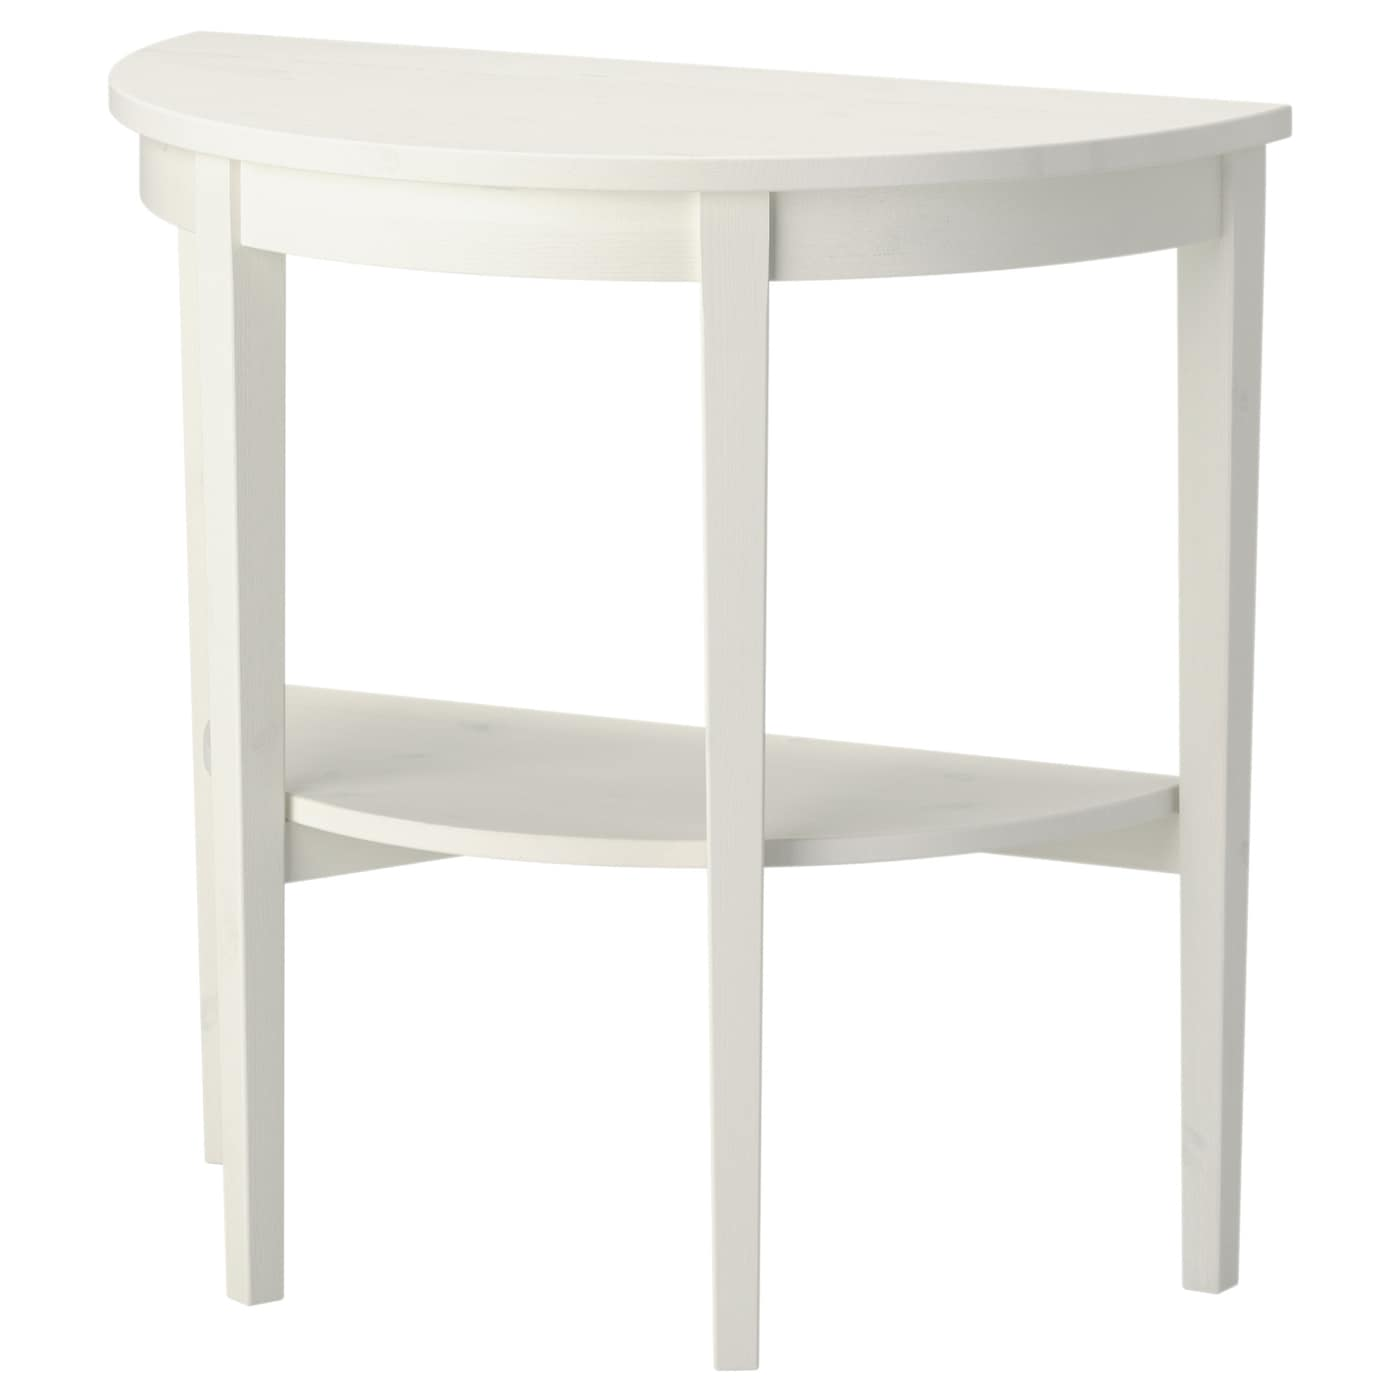 arkelstorp window table white 80 x 40 x 75 cm ikea. Black Bedroom Furniture Sets. Home Design Ideas